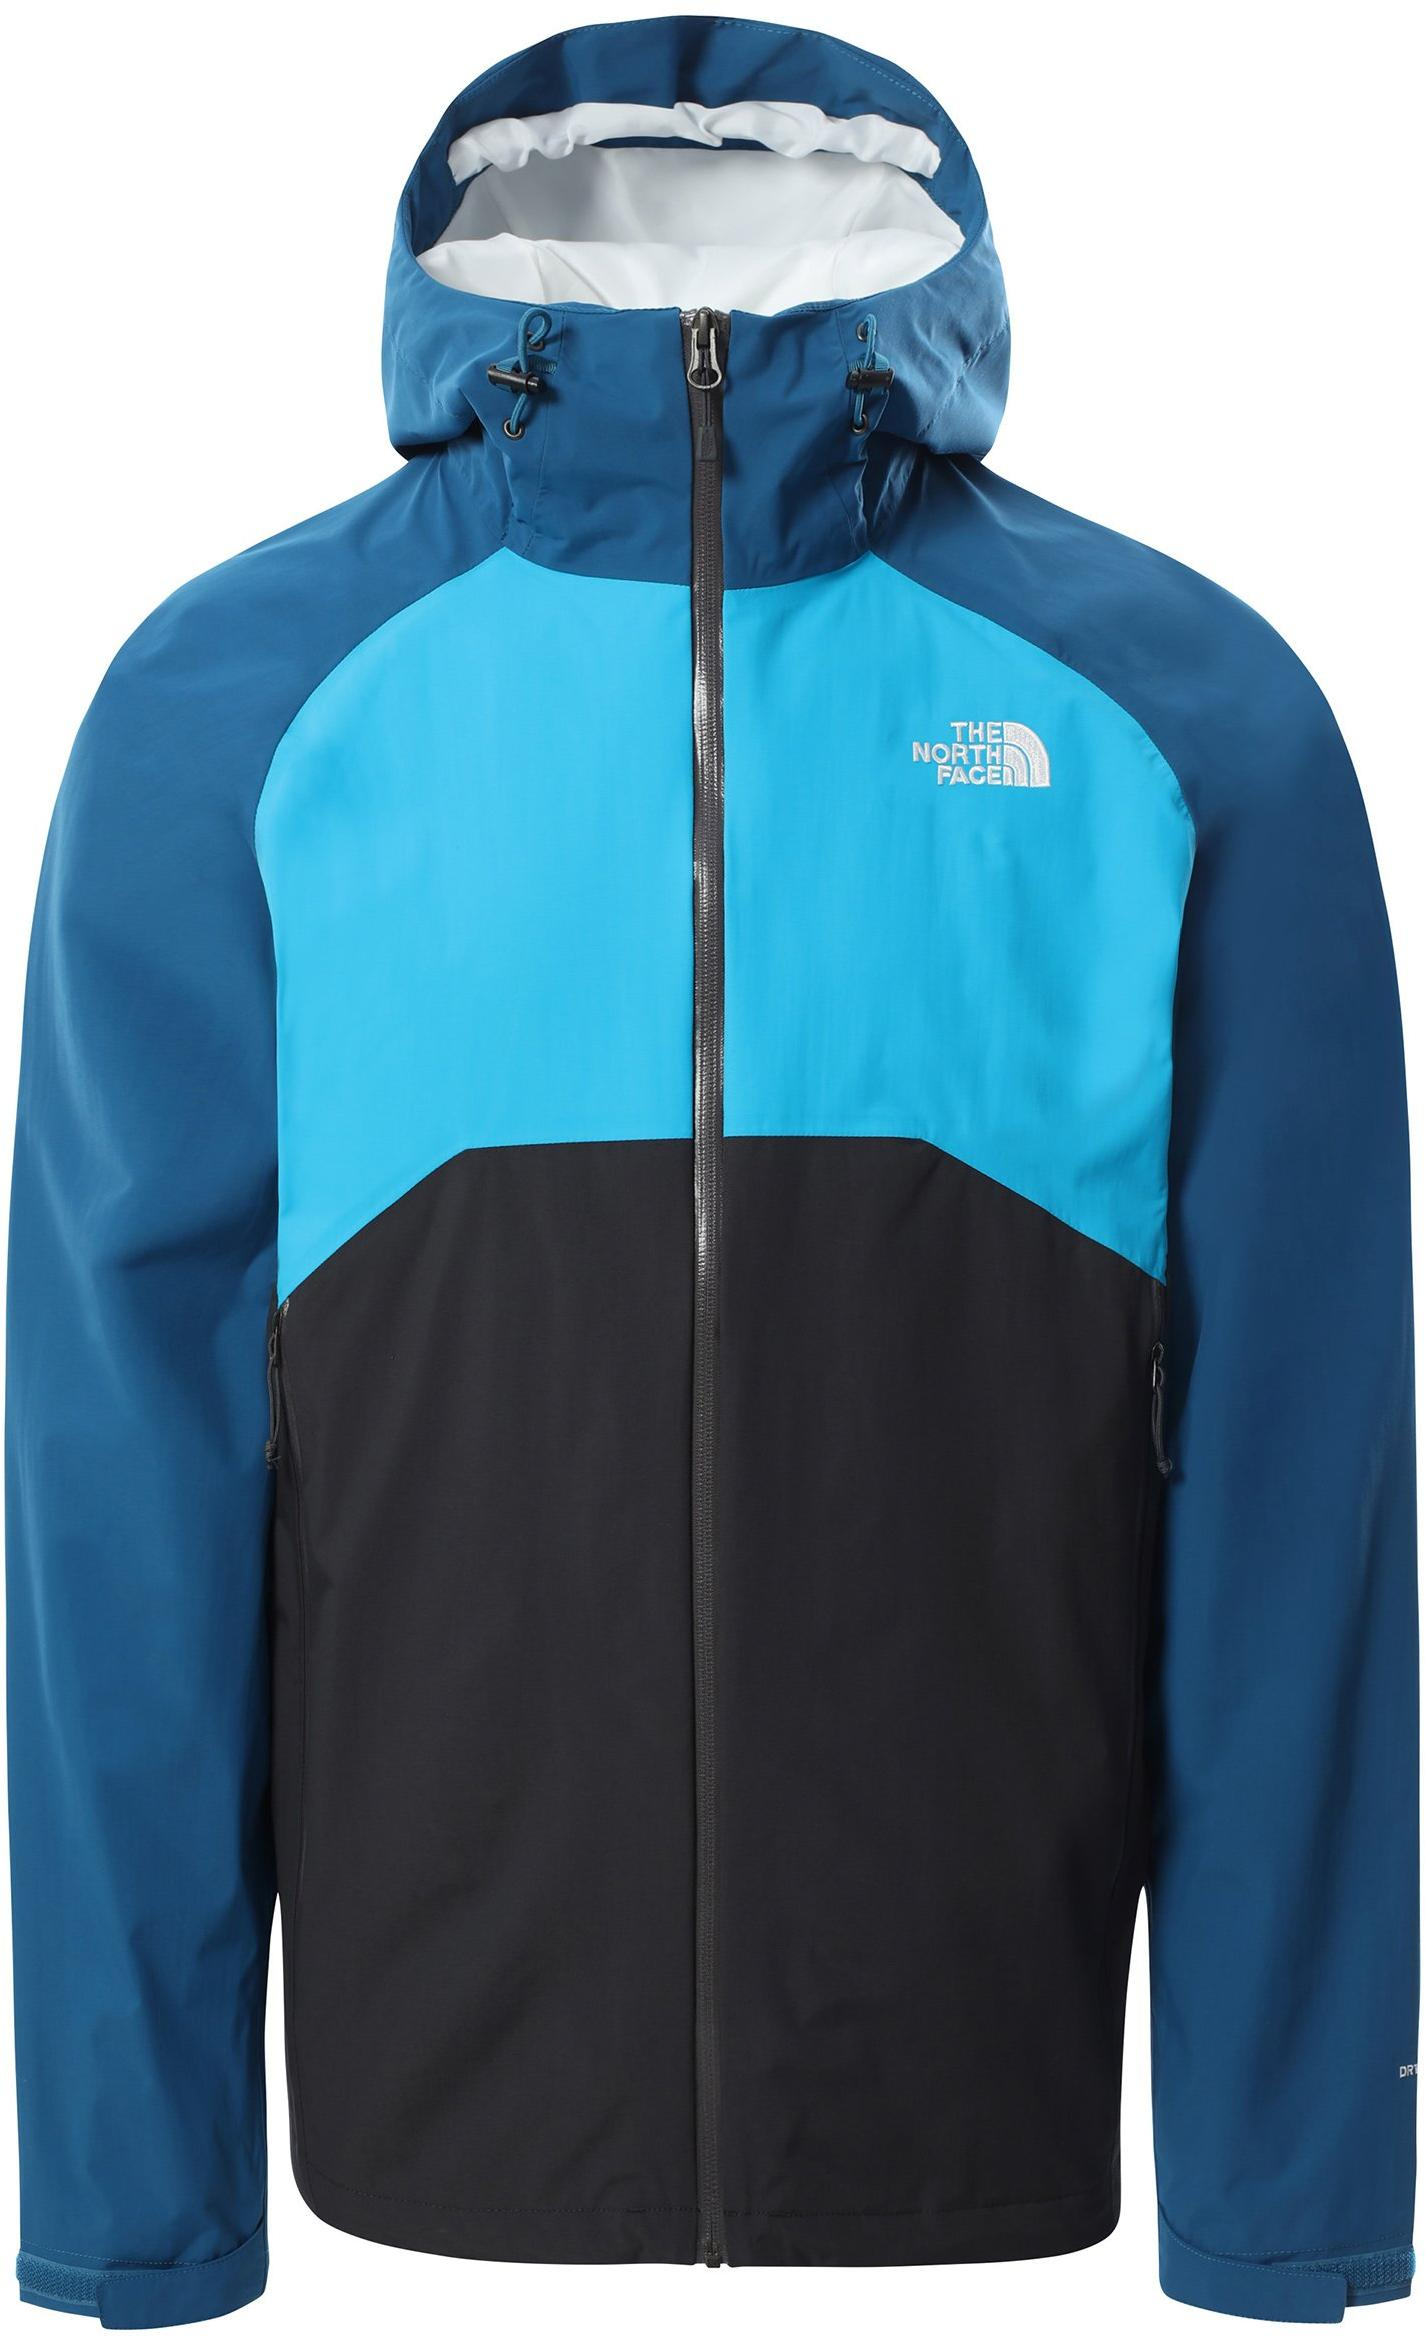 The North Face Men's STRATOS JACKET S